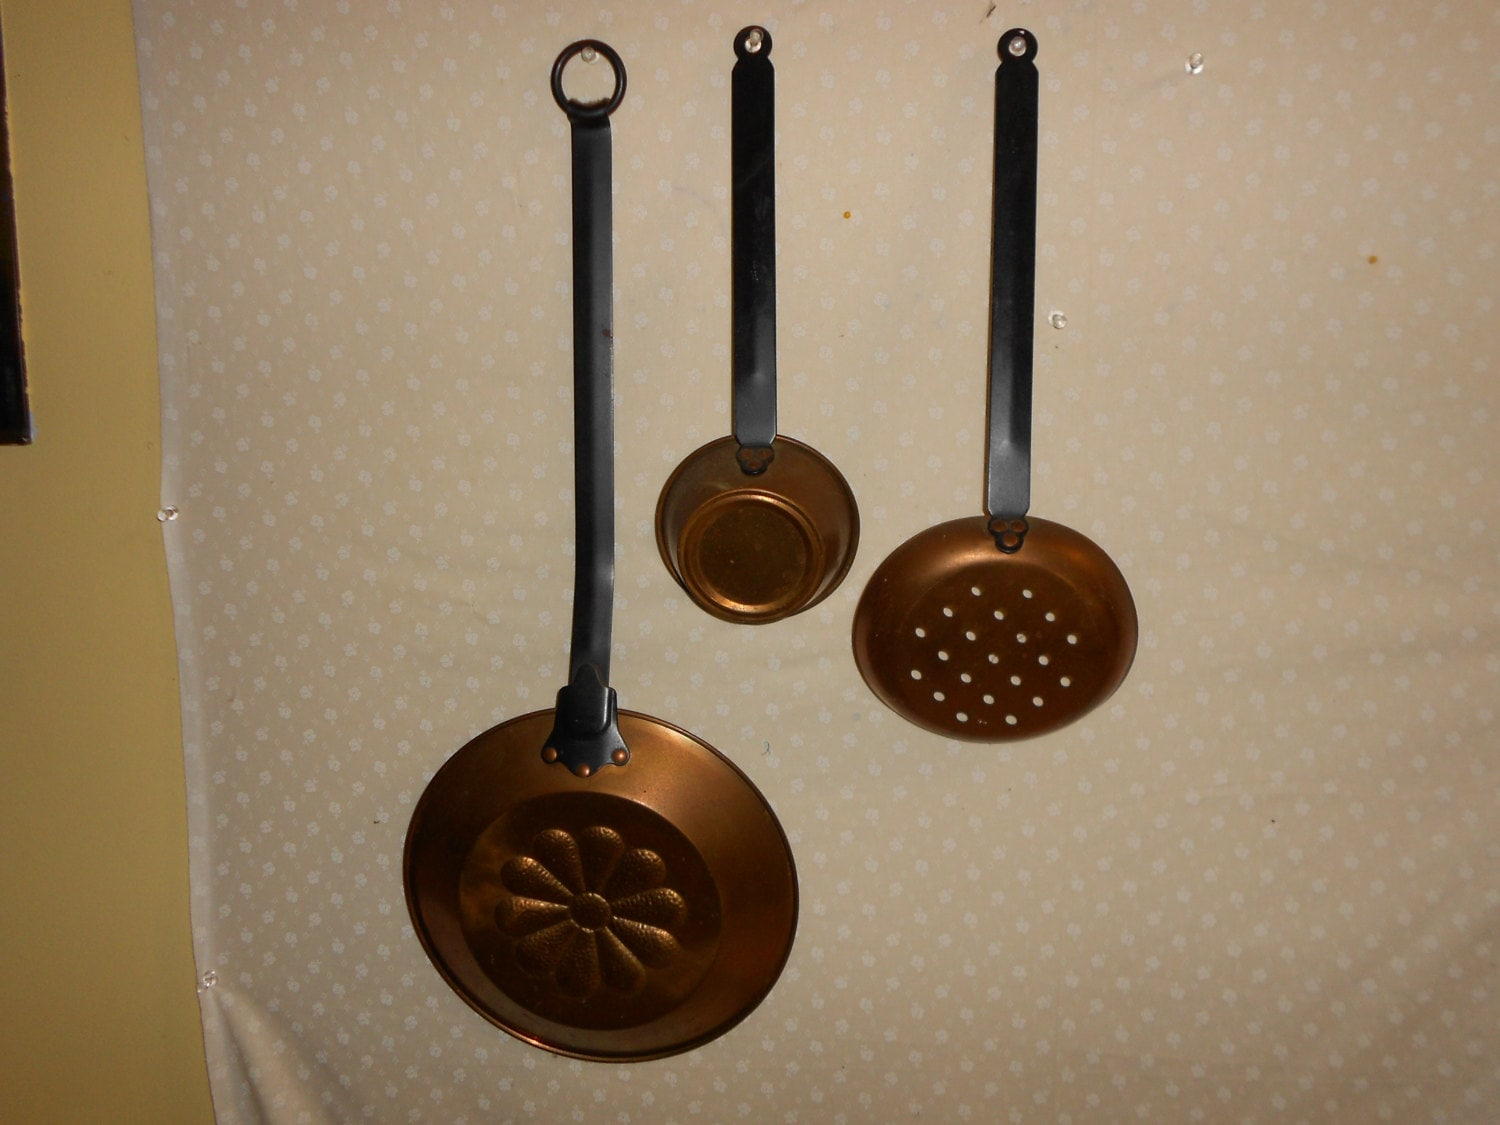 copper kitchen decor scoops ladle strainer large wall